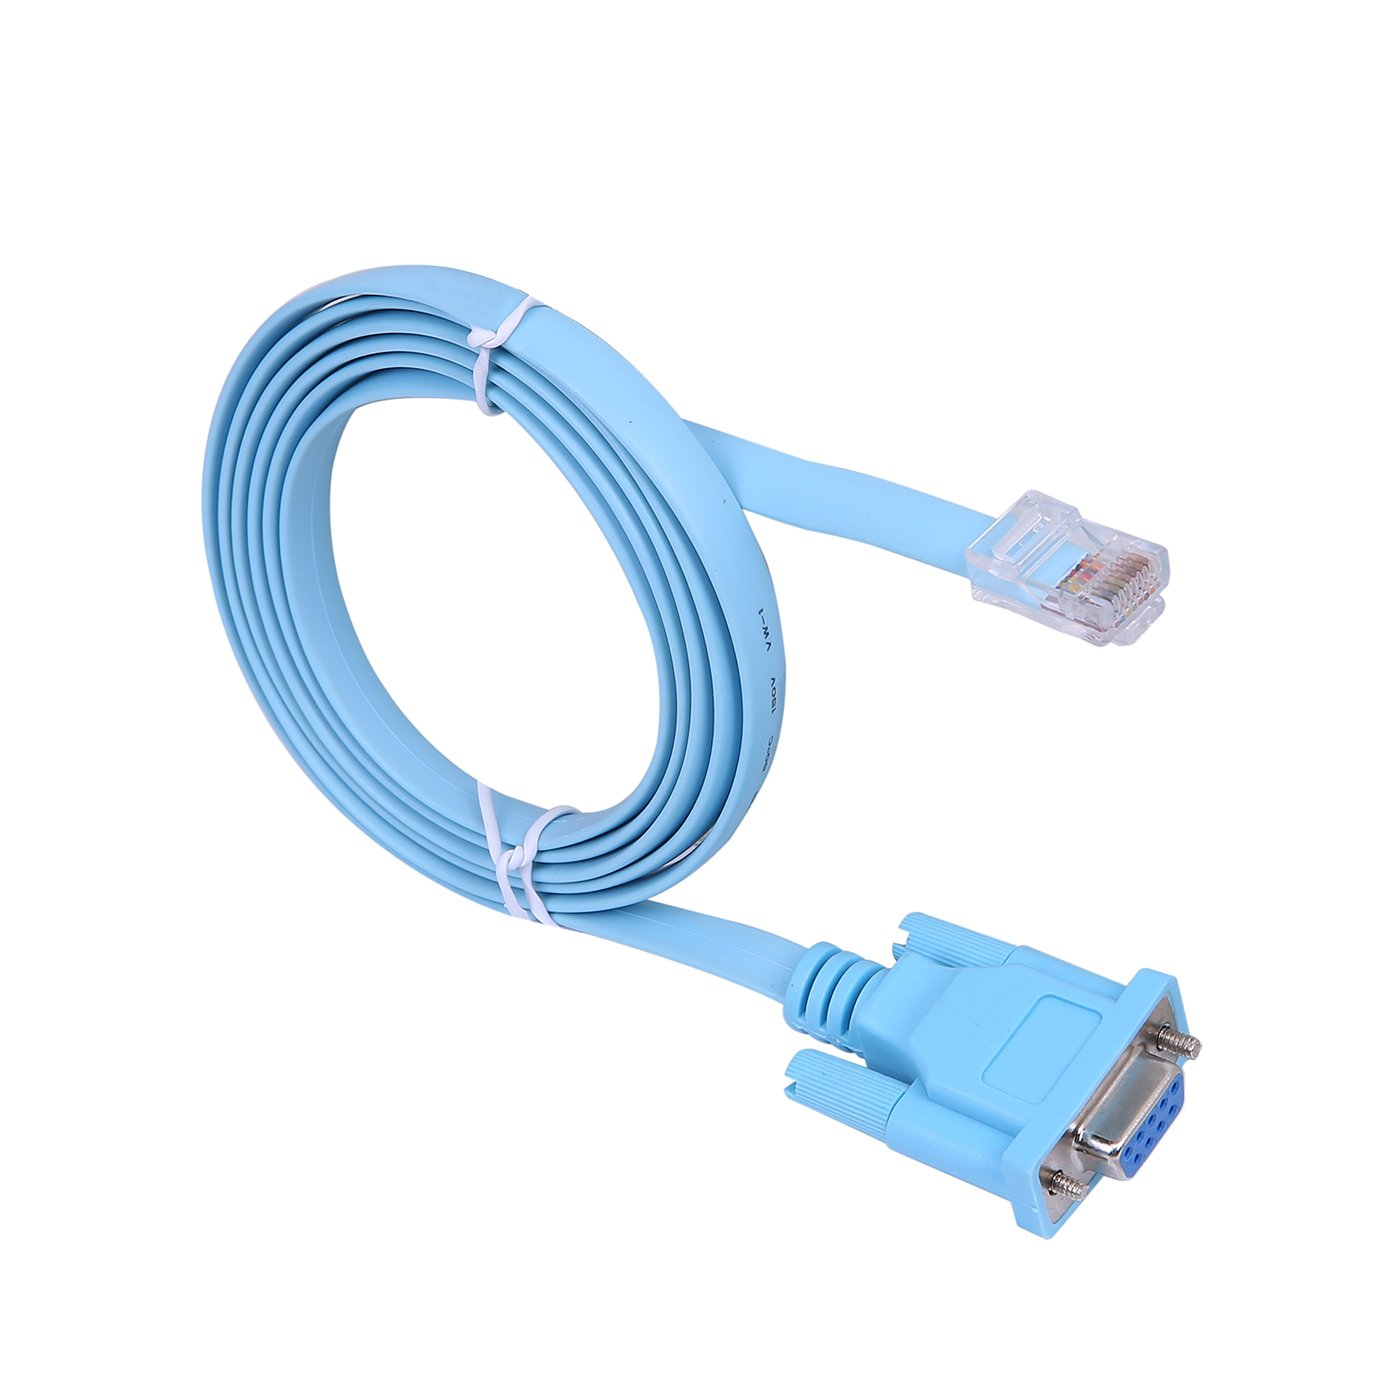 Usb Serial Rj45 Wiring Diagram: Best Rated In Cat 5 Ethernet Cables & Helpful Customer